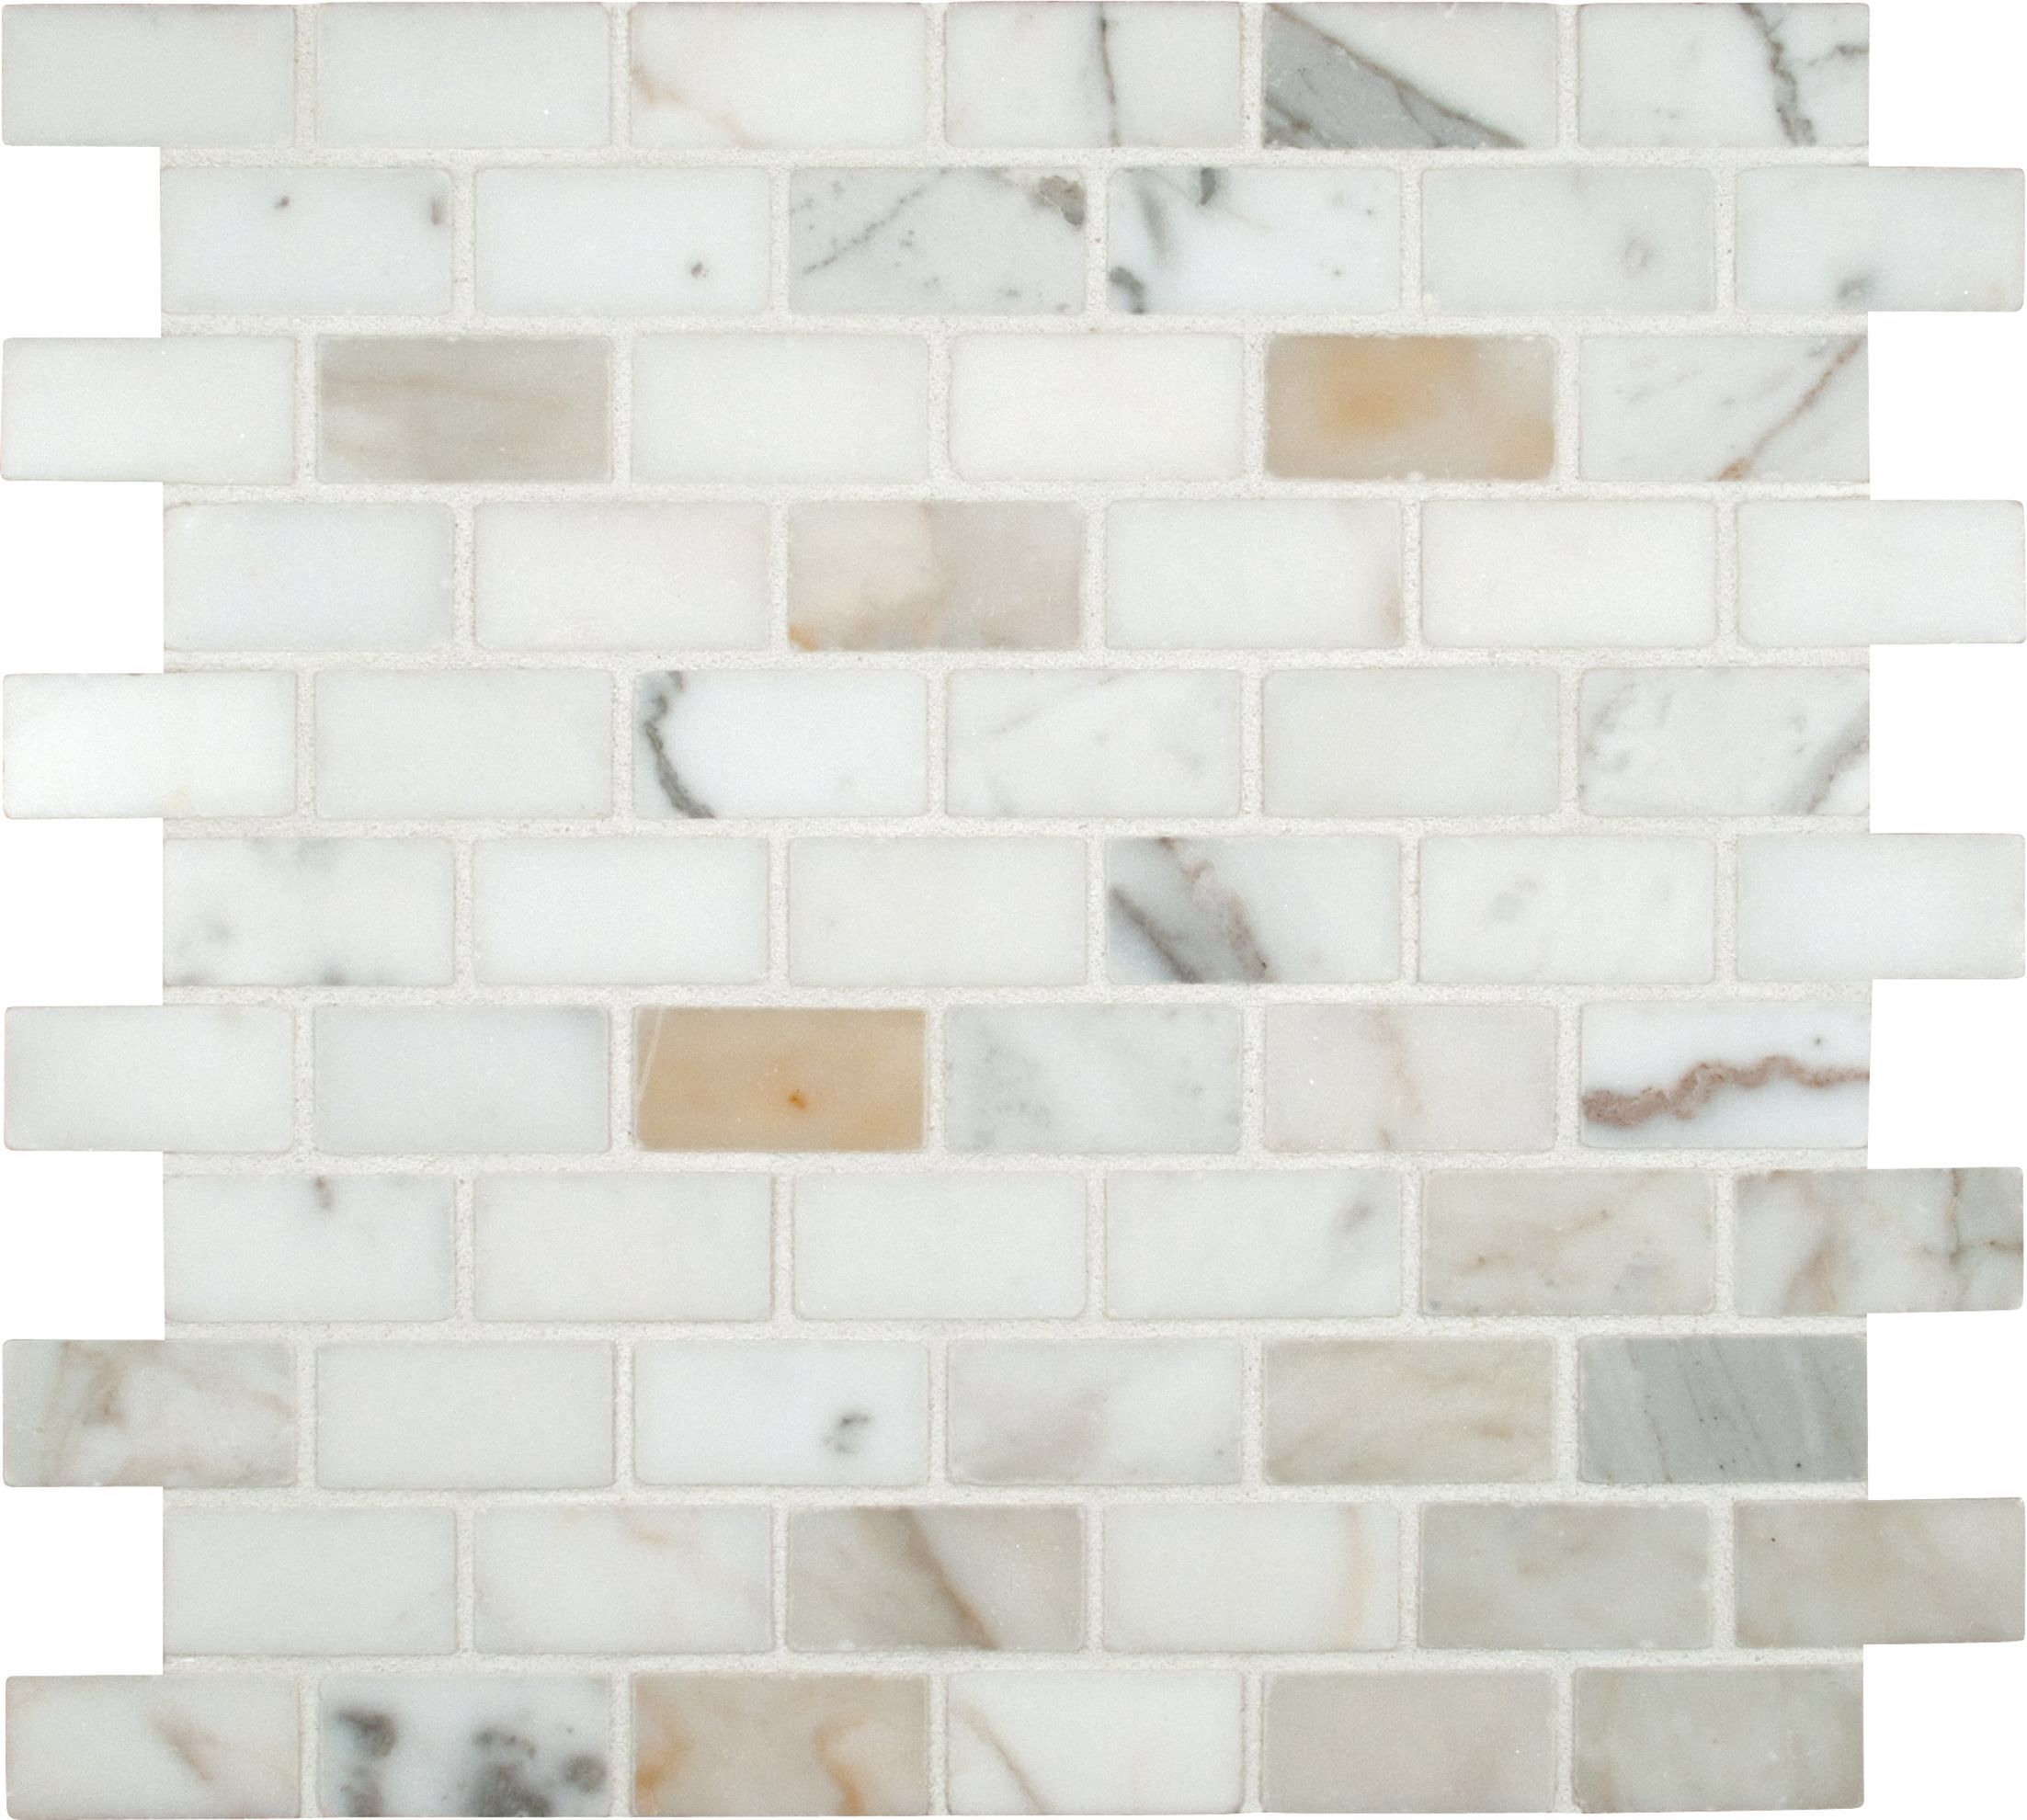 Calacatta gold mounted 1 x 2 marble subway tile in white calacatta gold mounted 1 x 2 marble subway tile dailygadgetfo Images